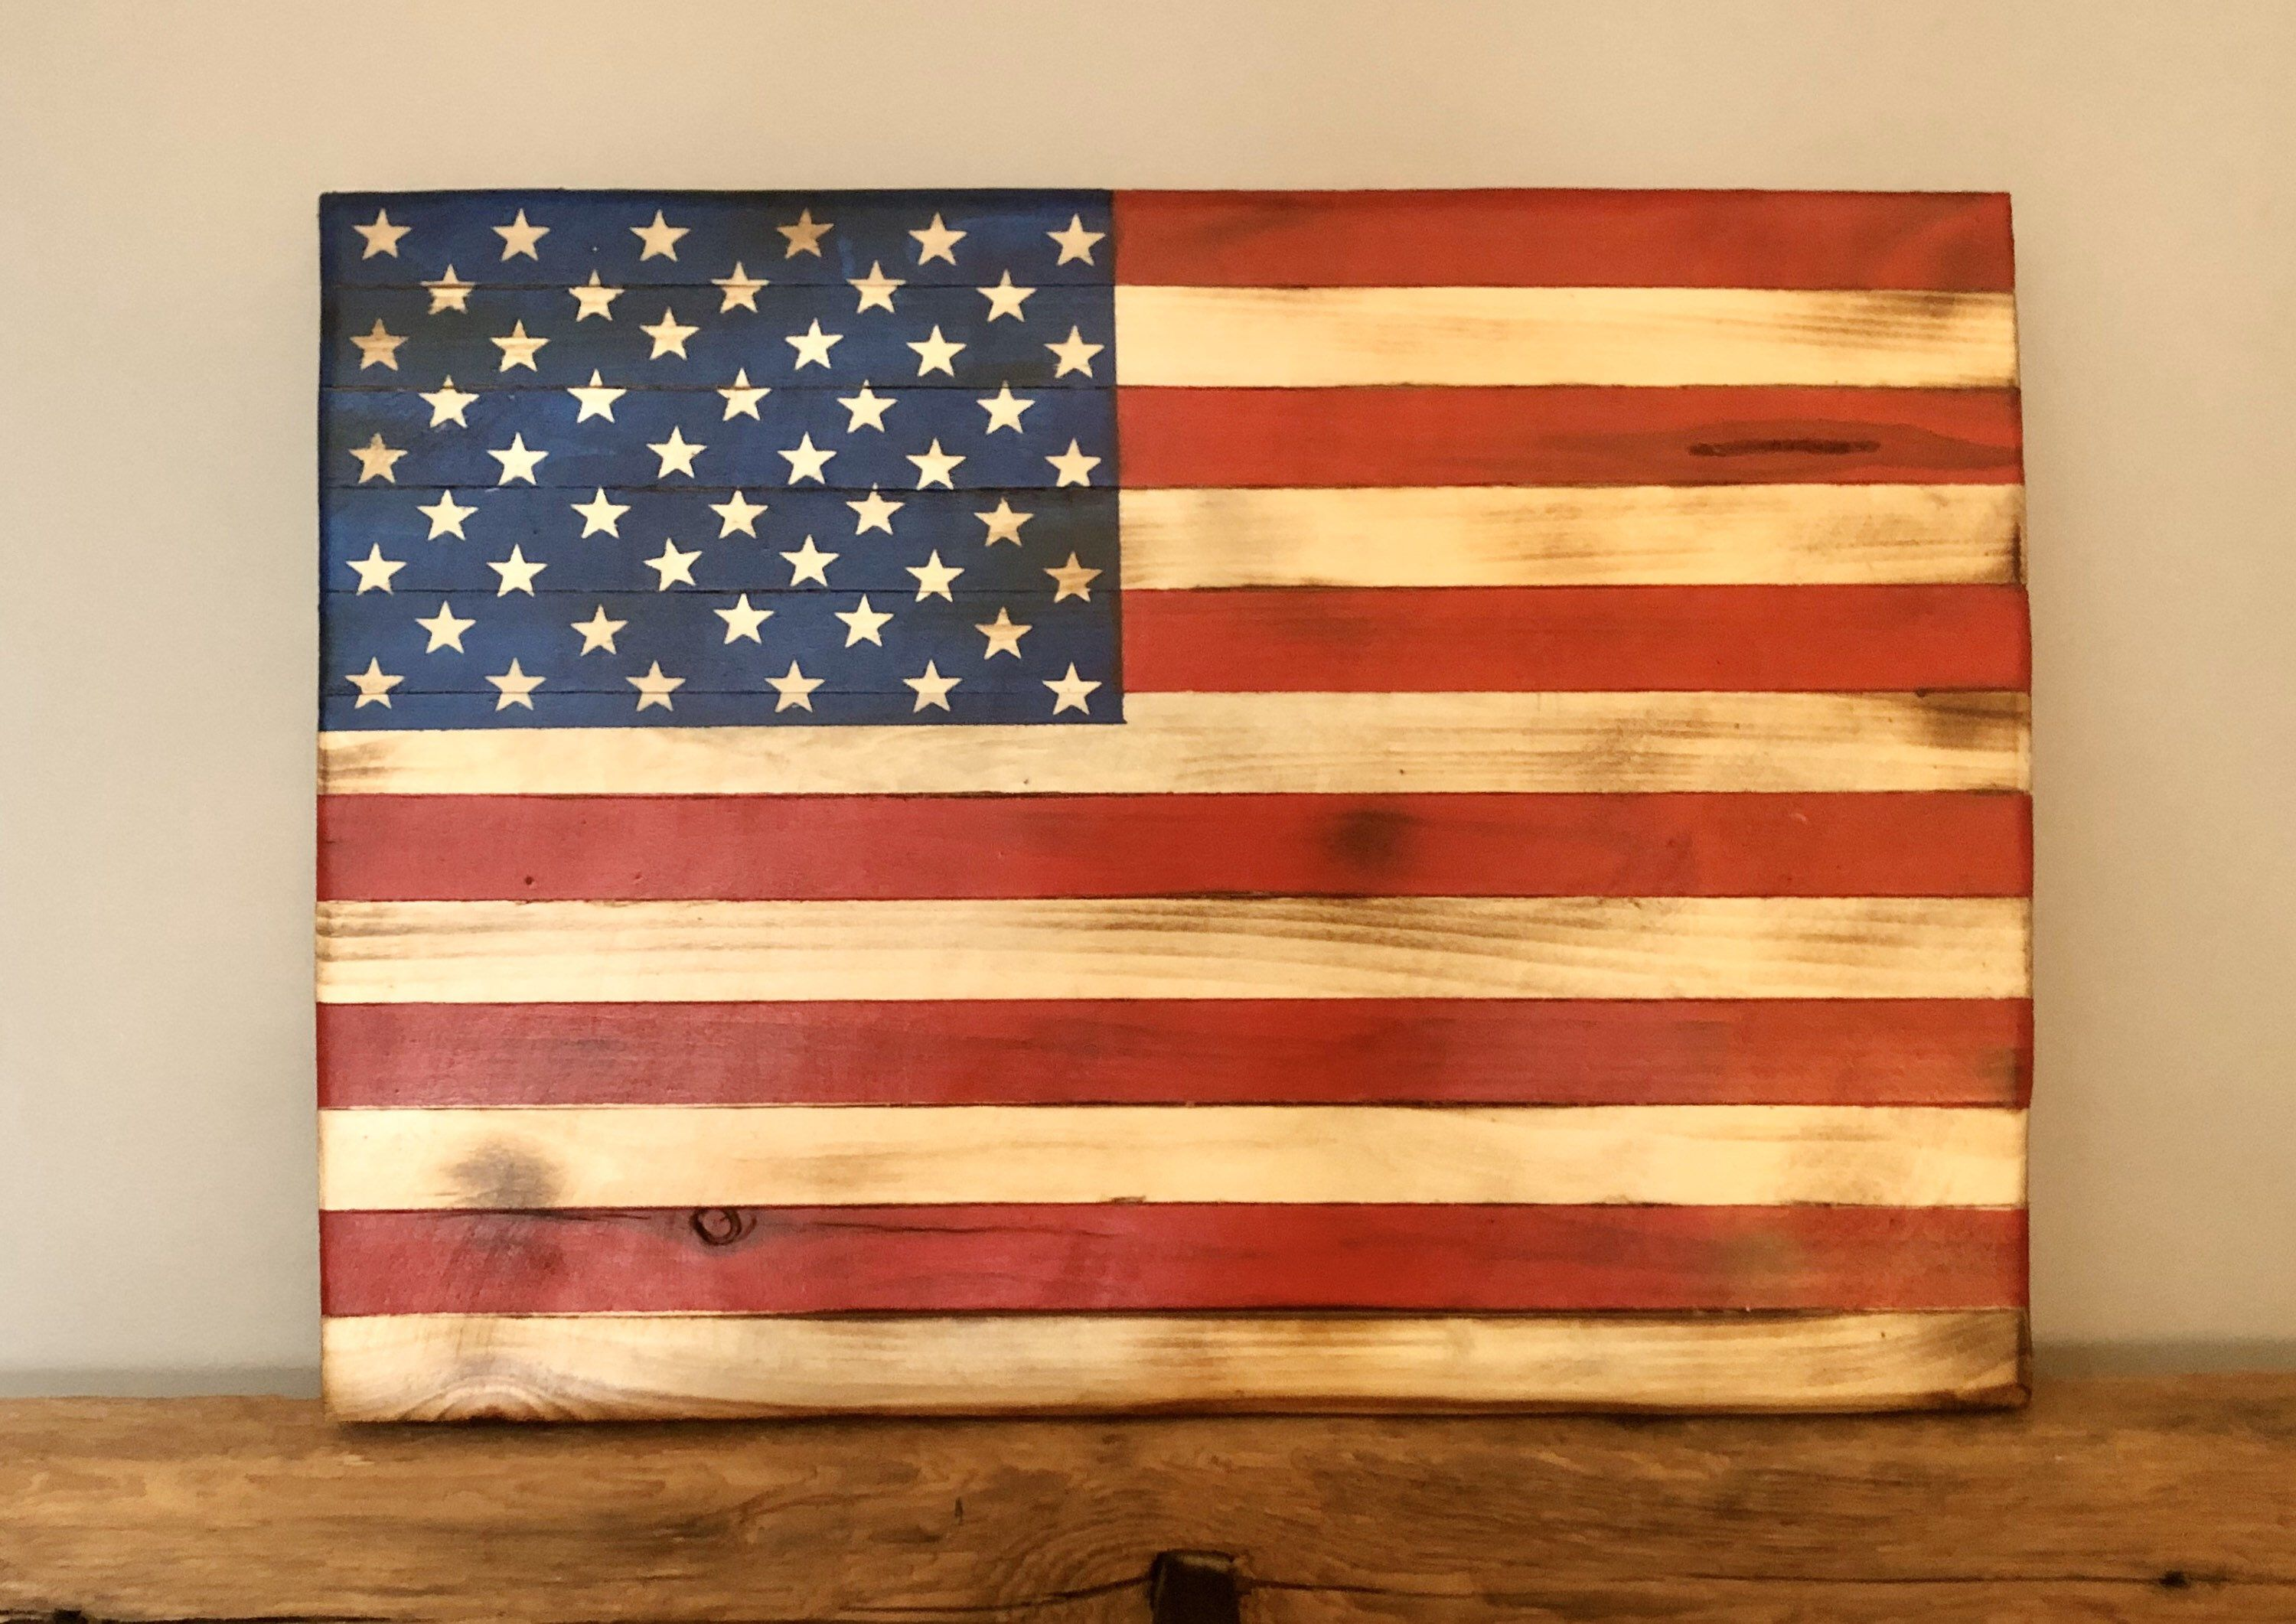 Wooden American Flag Wall Decor Handcrafted And Hand Painted In 2020 American Flag Wall Decor American Flag Wall Hanging Wooden American Flag